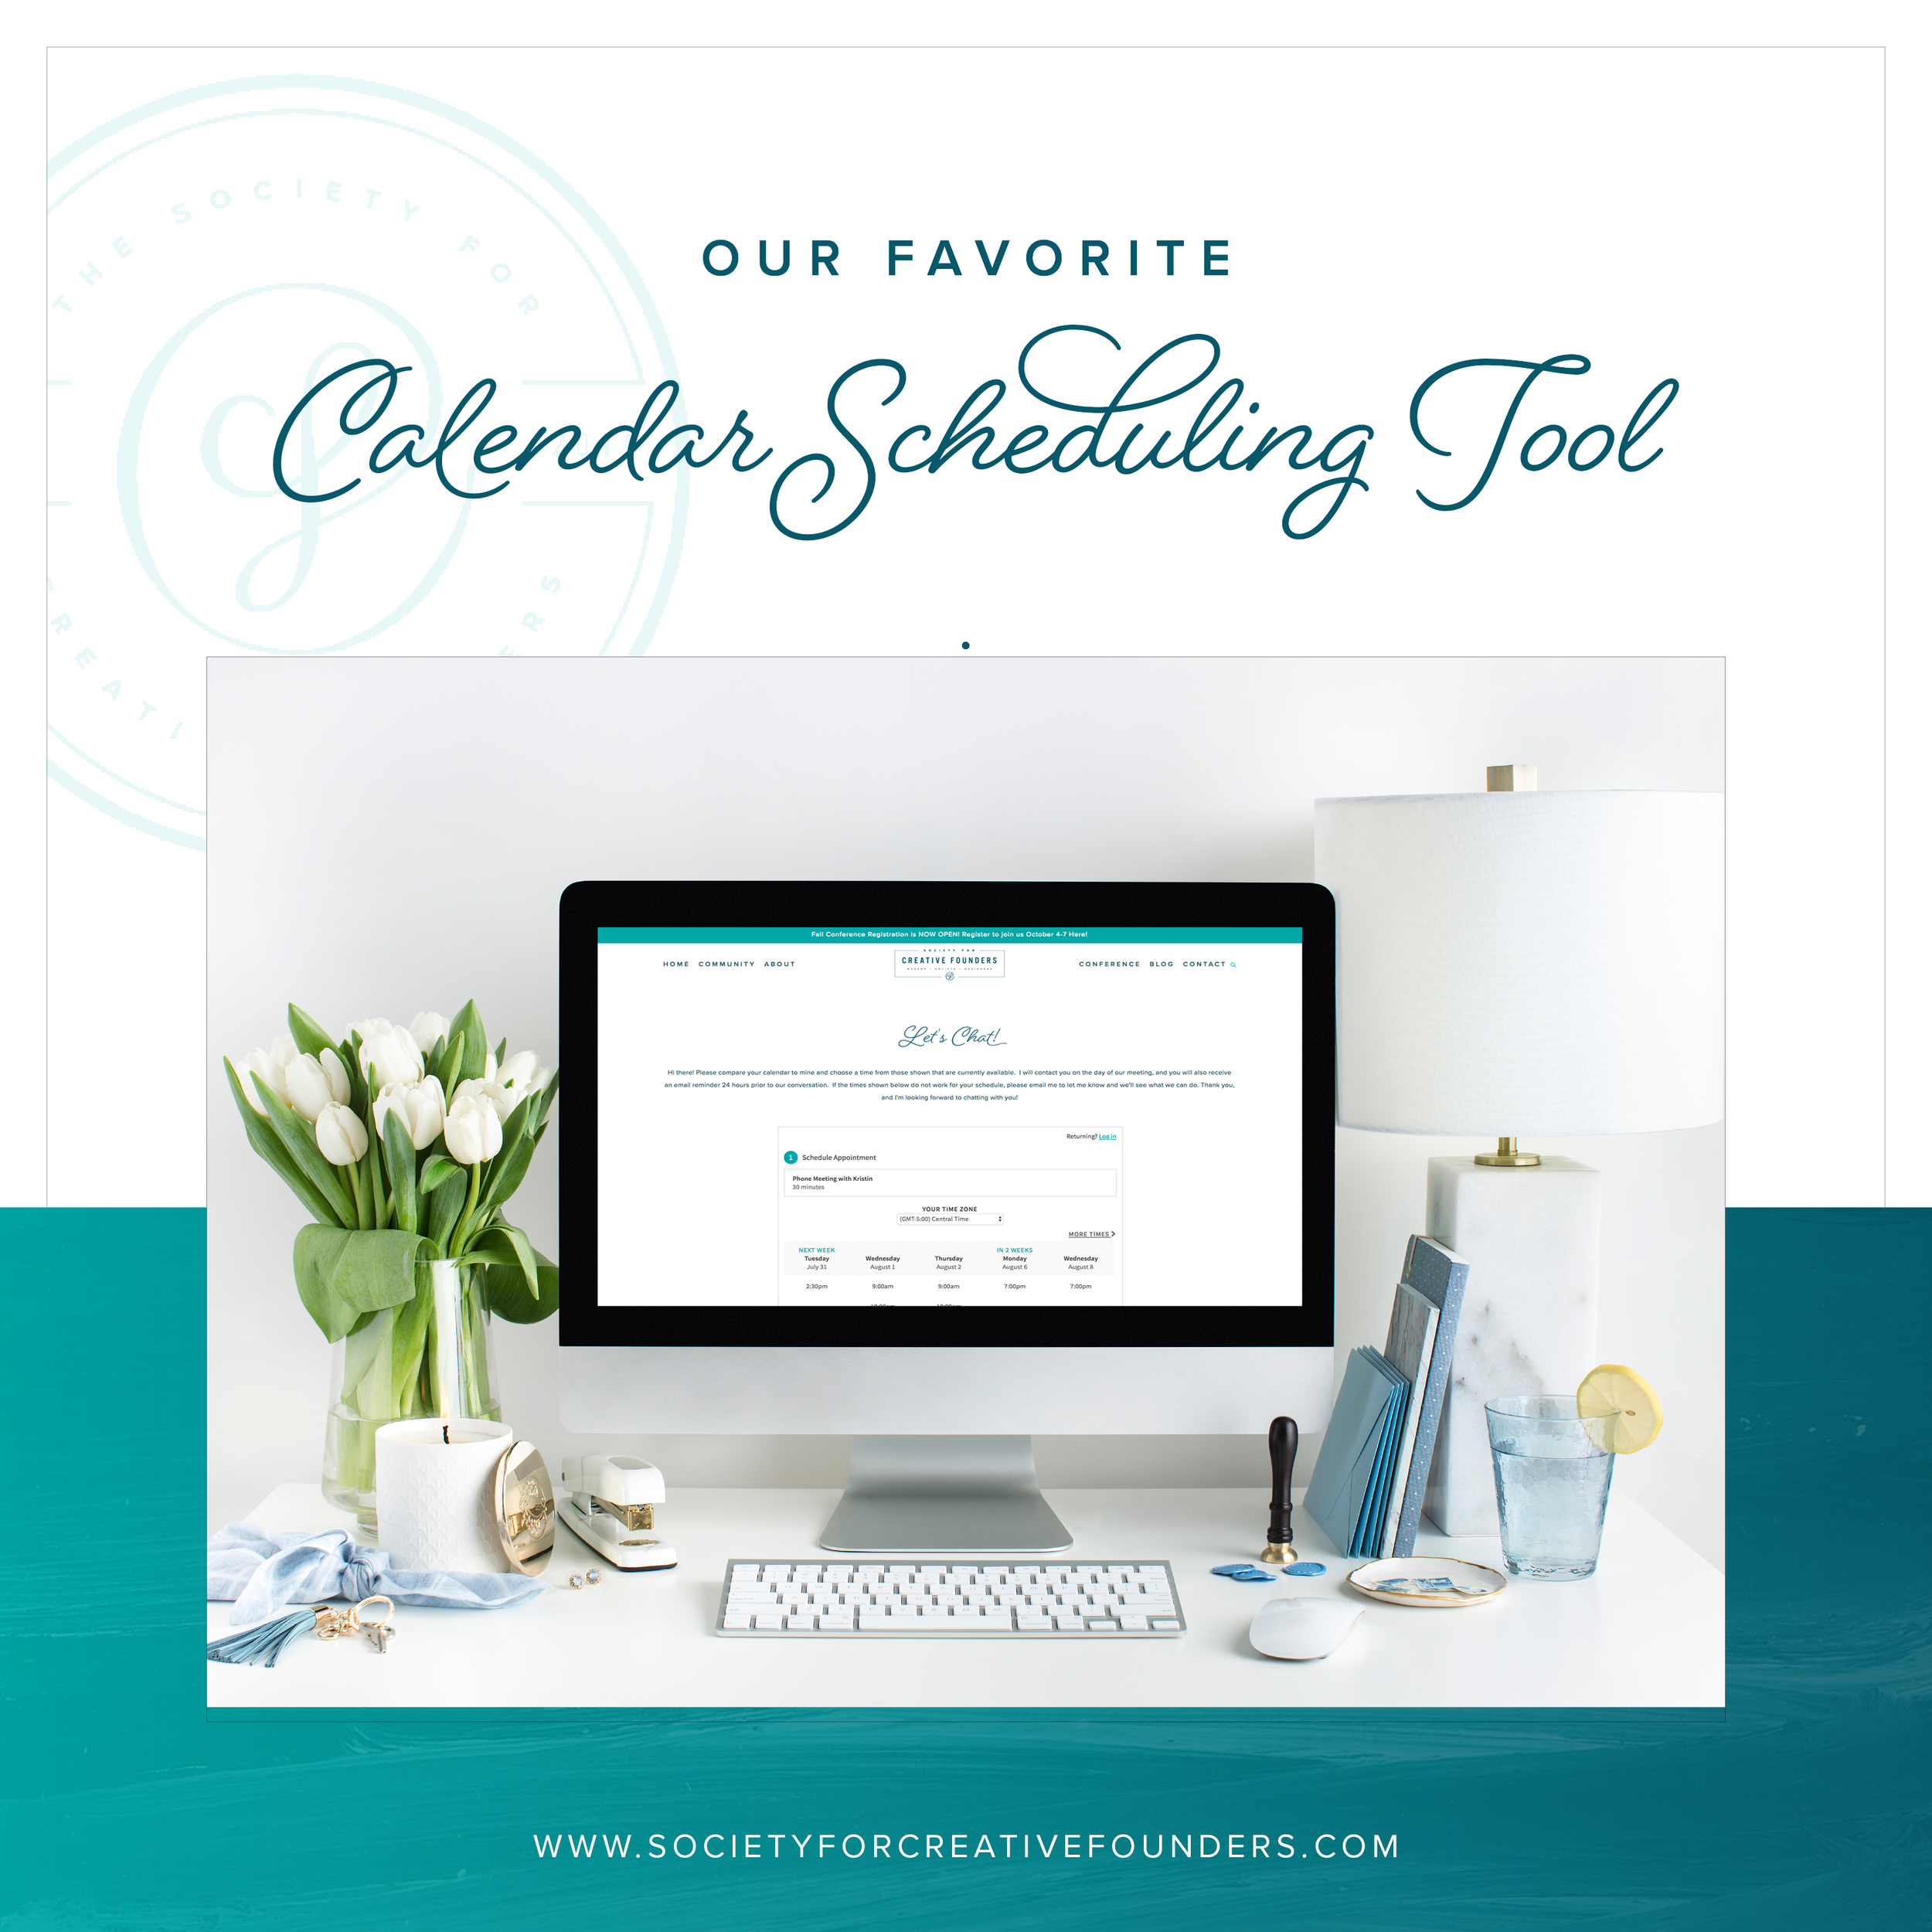 Different Calendar Scheduling Tools for Small Business